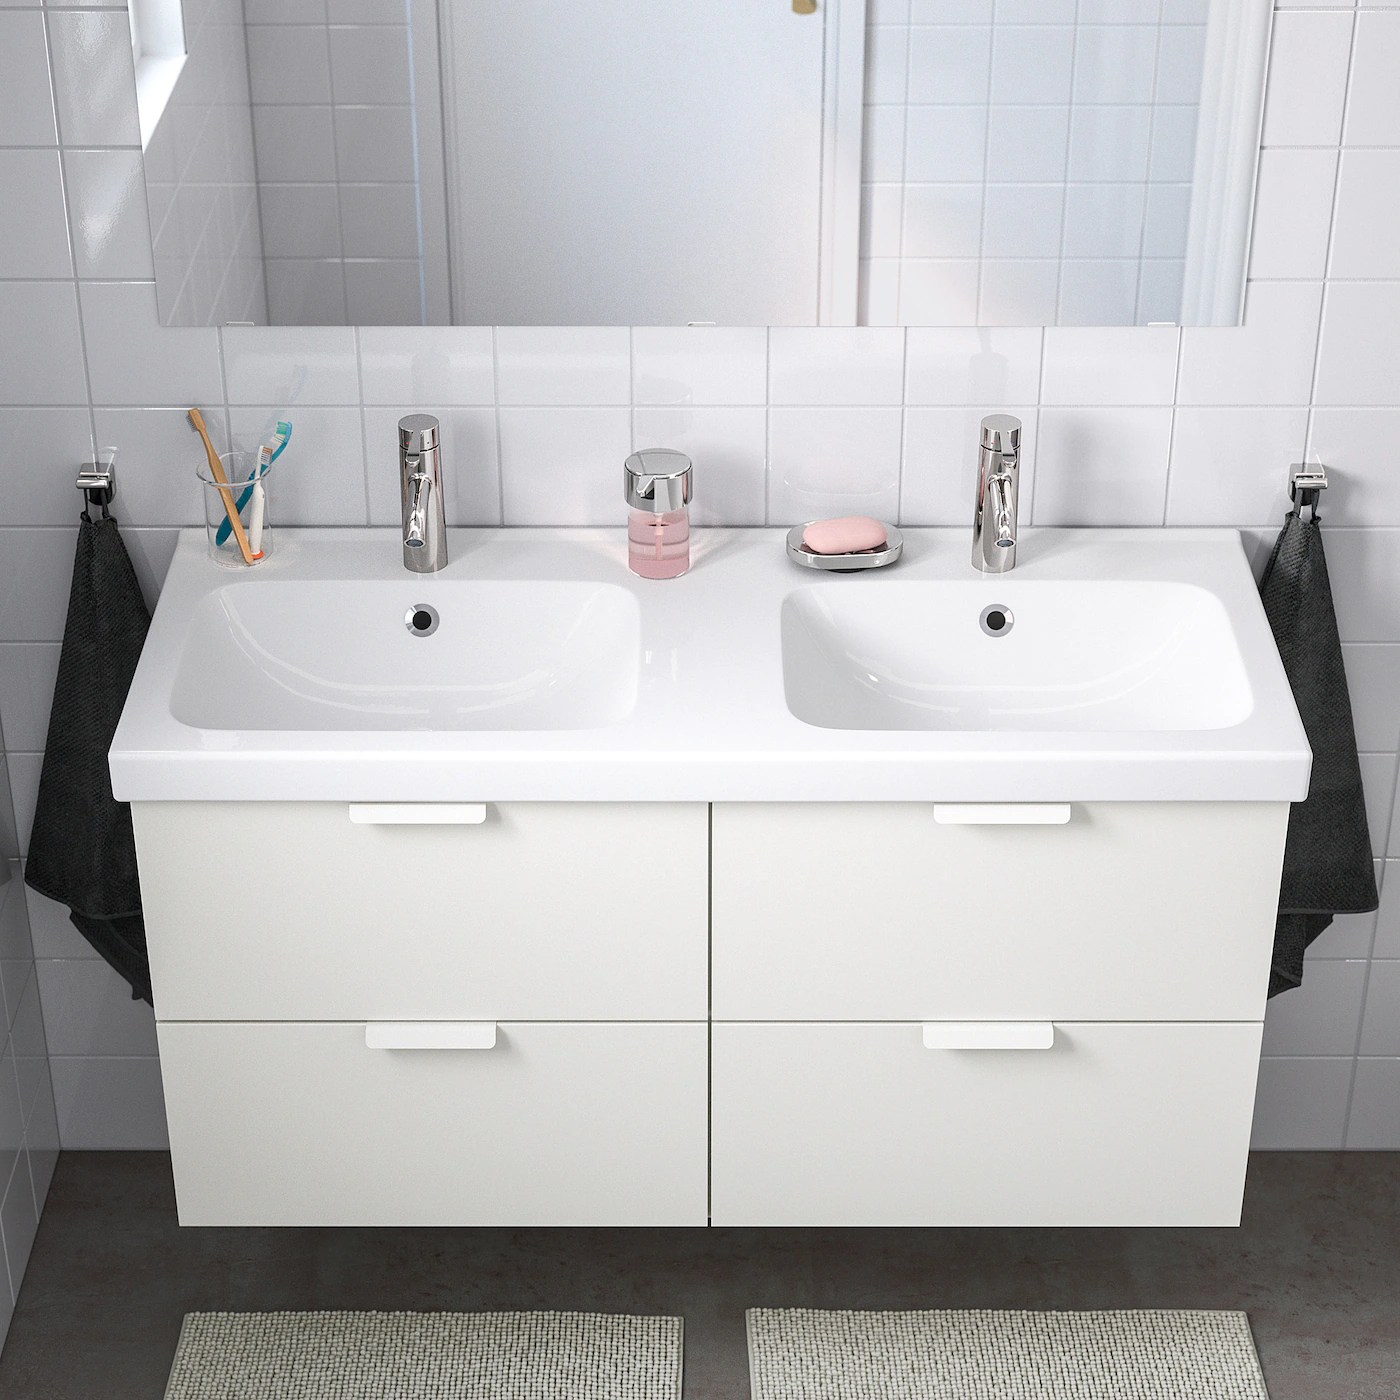 odensvik double bowl sink 48 3 8x19 1 4x2 3 8